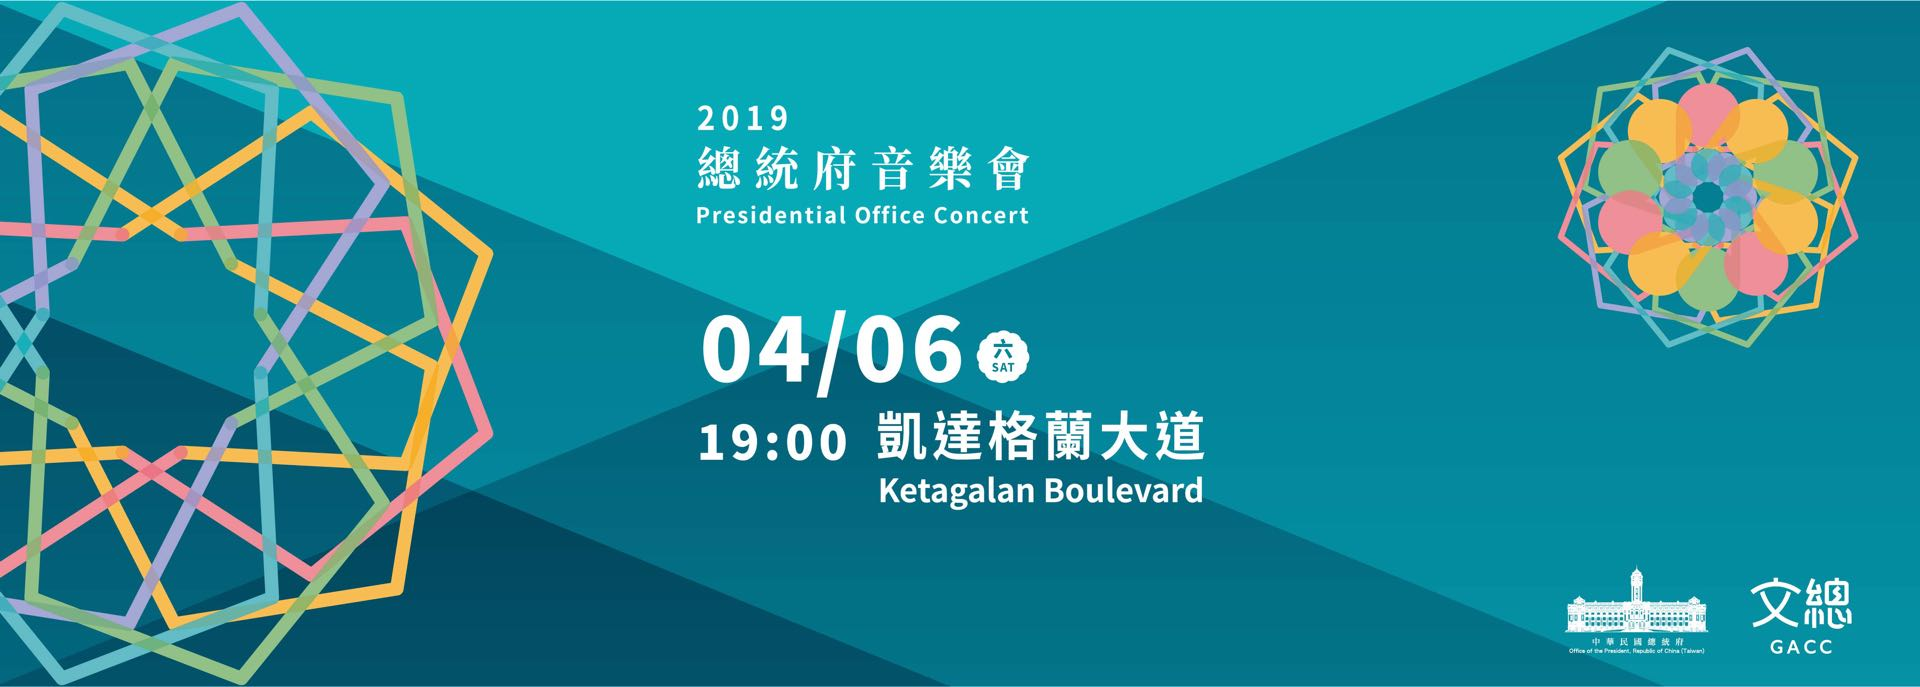 The 2019 Presidential Office Concert will be held on April 6 outside the Presidential Office Building on Ketagalan Boulevard.